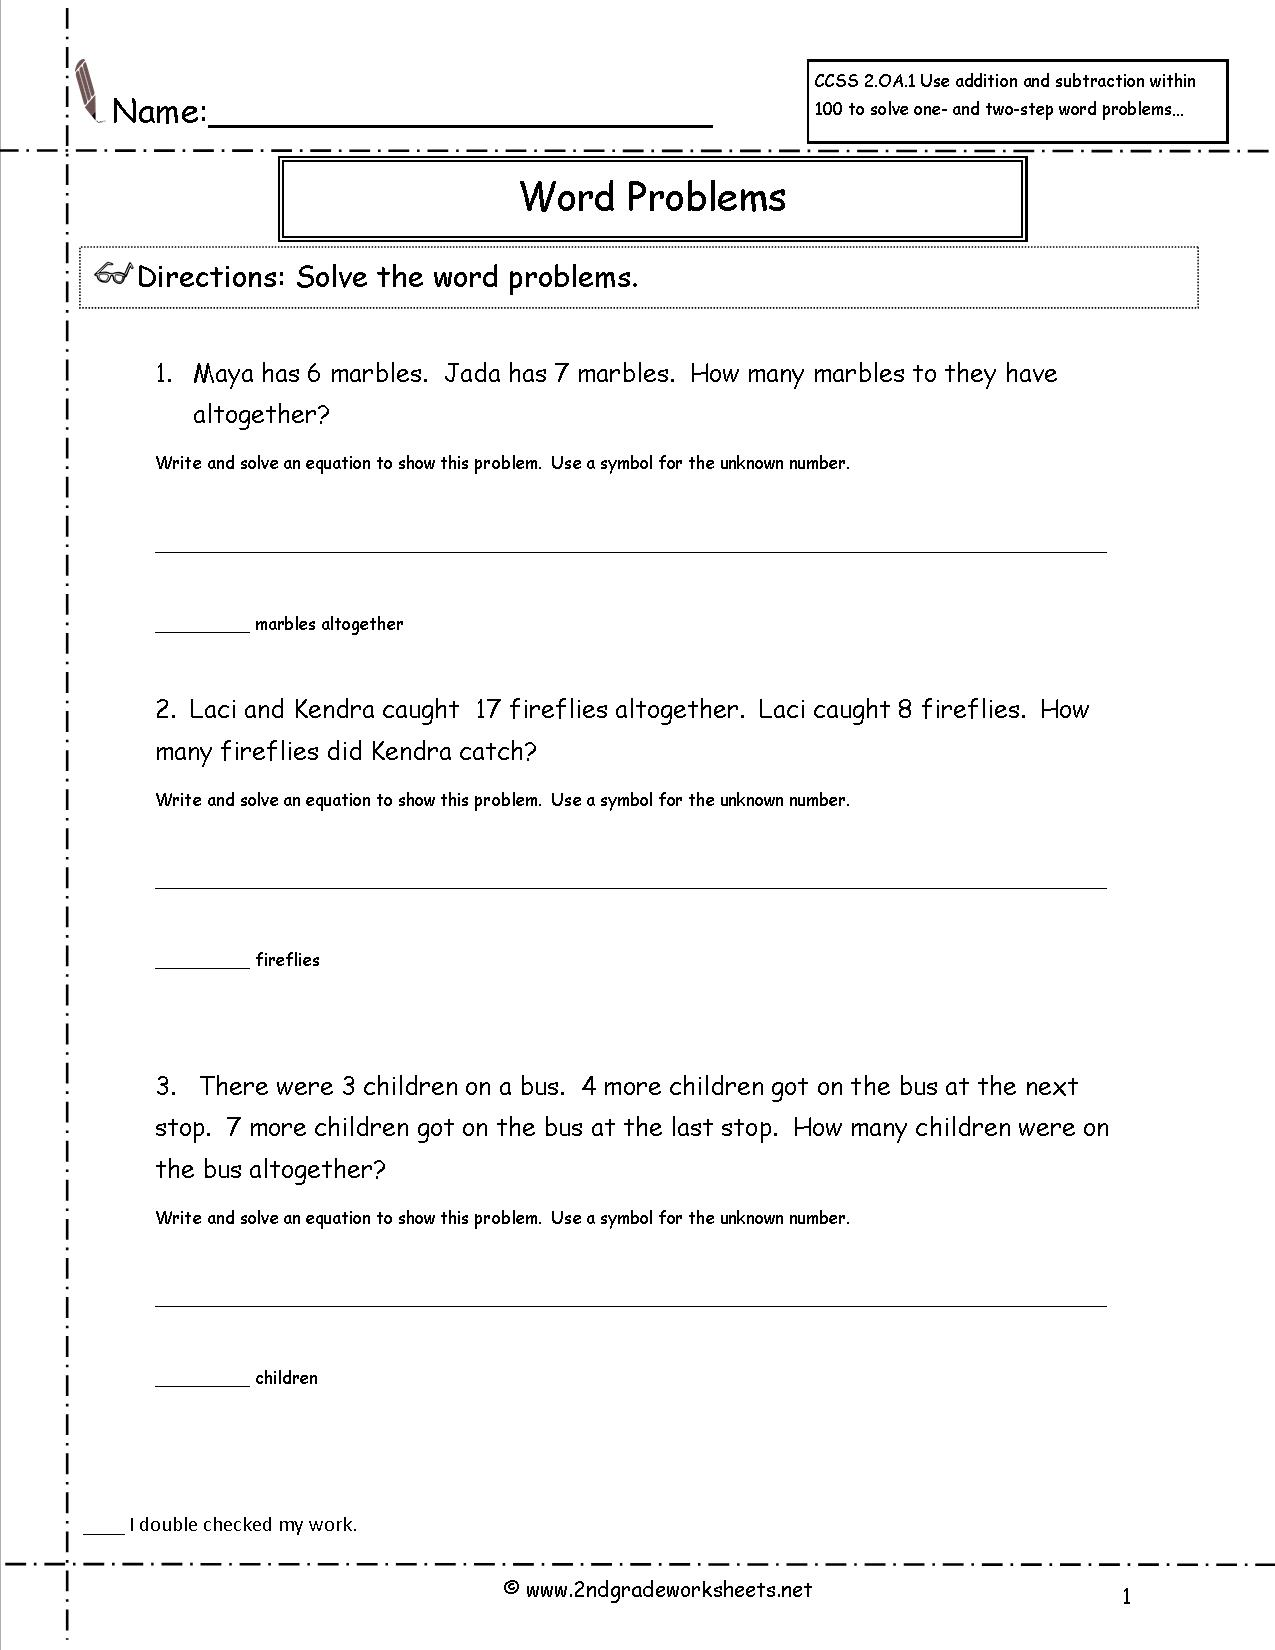 Word Problems Homework Worksheet